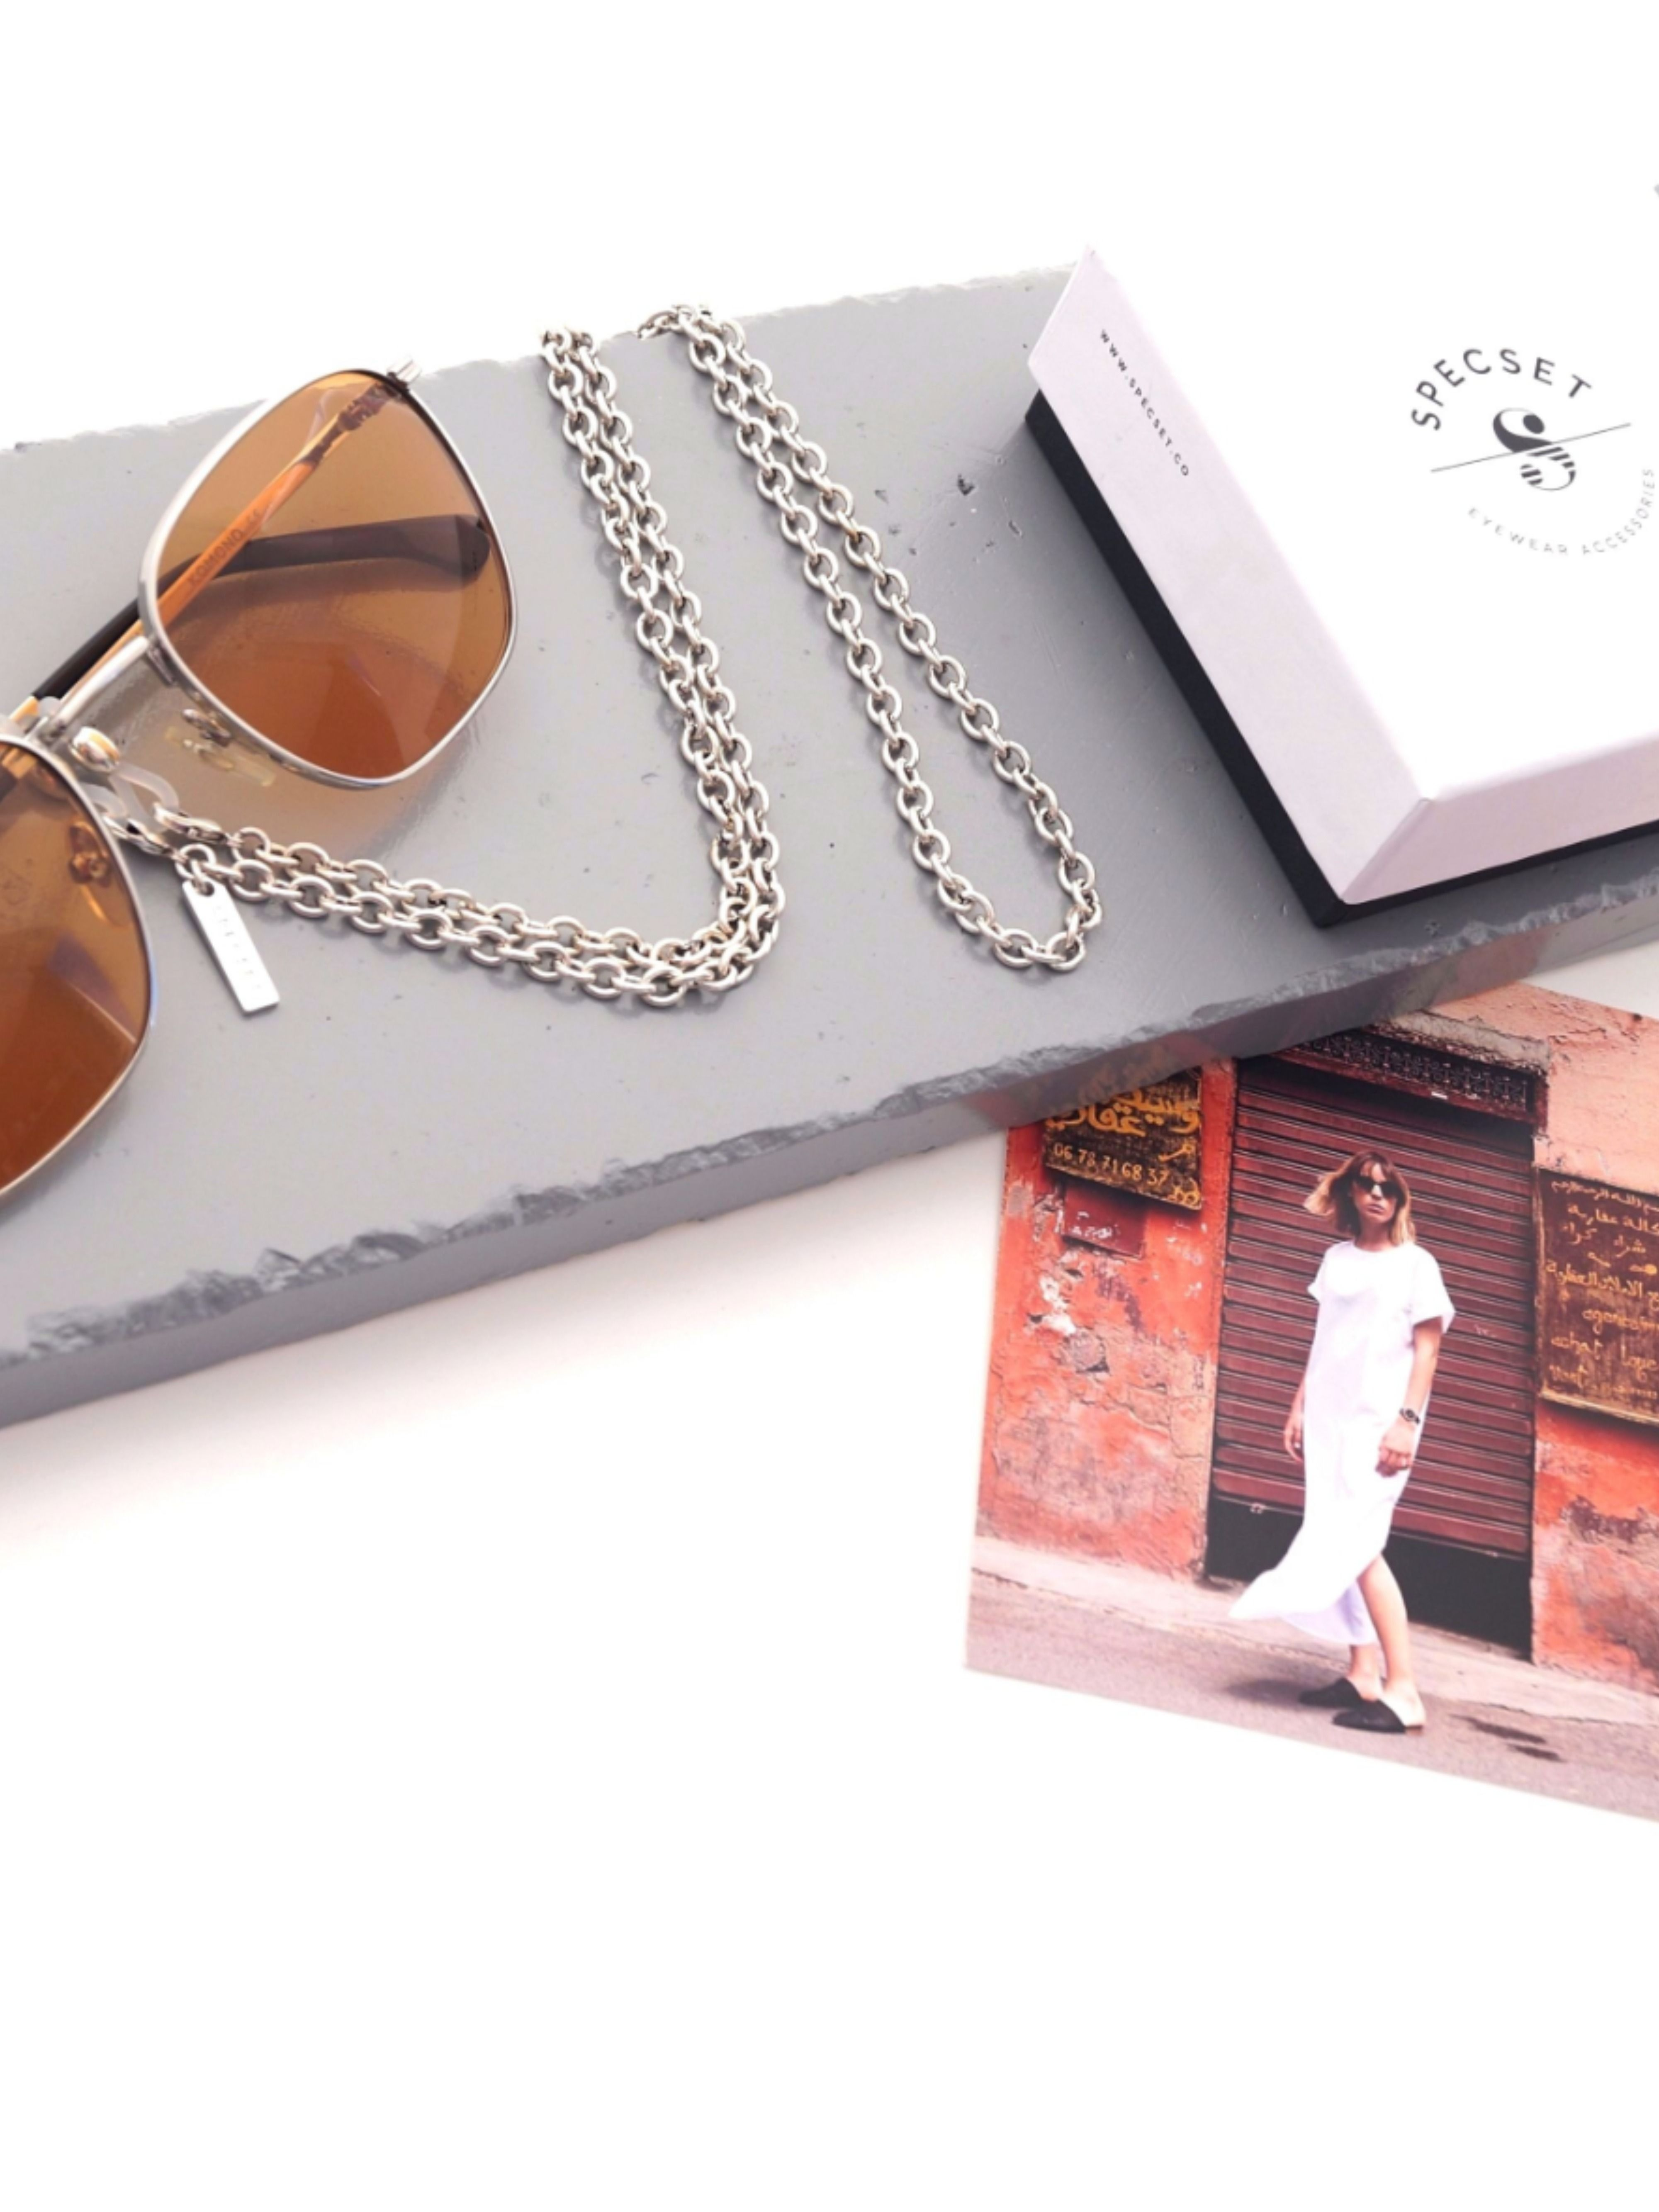 Minimalistic Eyeglass Chain for Men and Women with a Cross SPECSET Unisex Eyewear Accessories